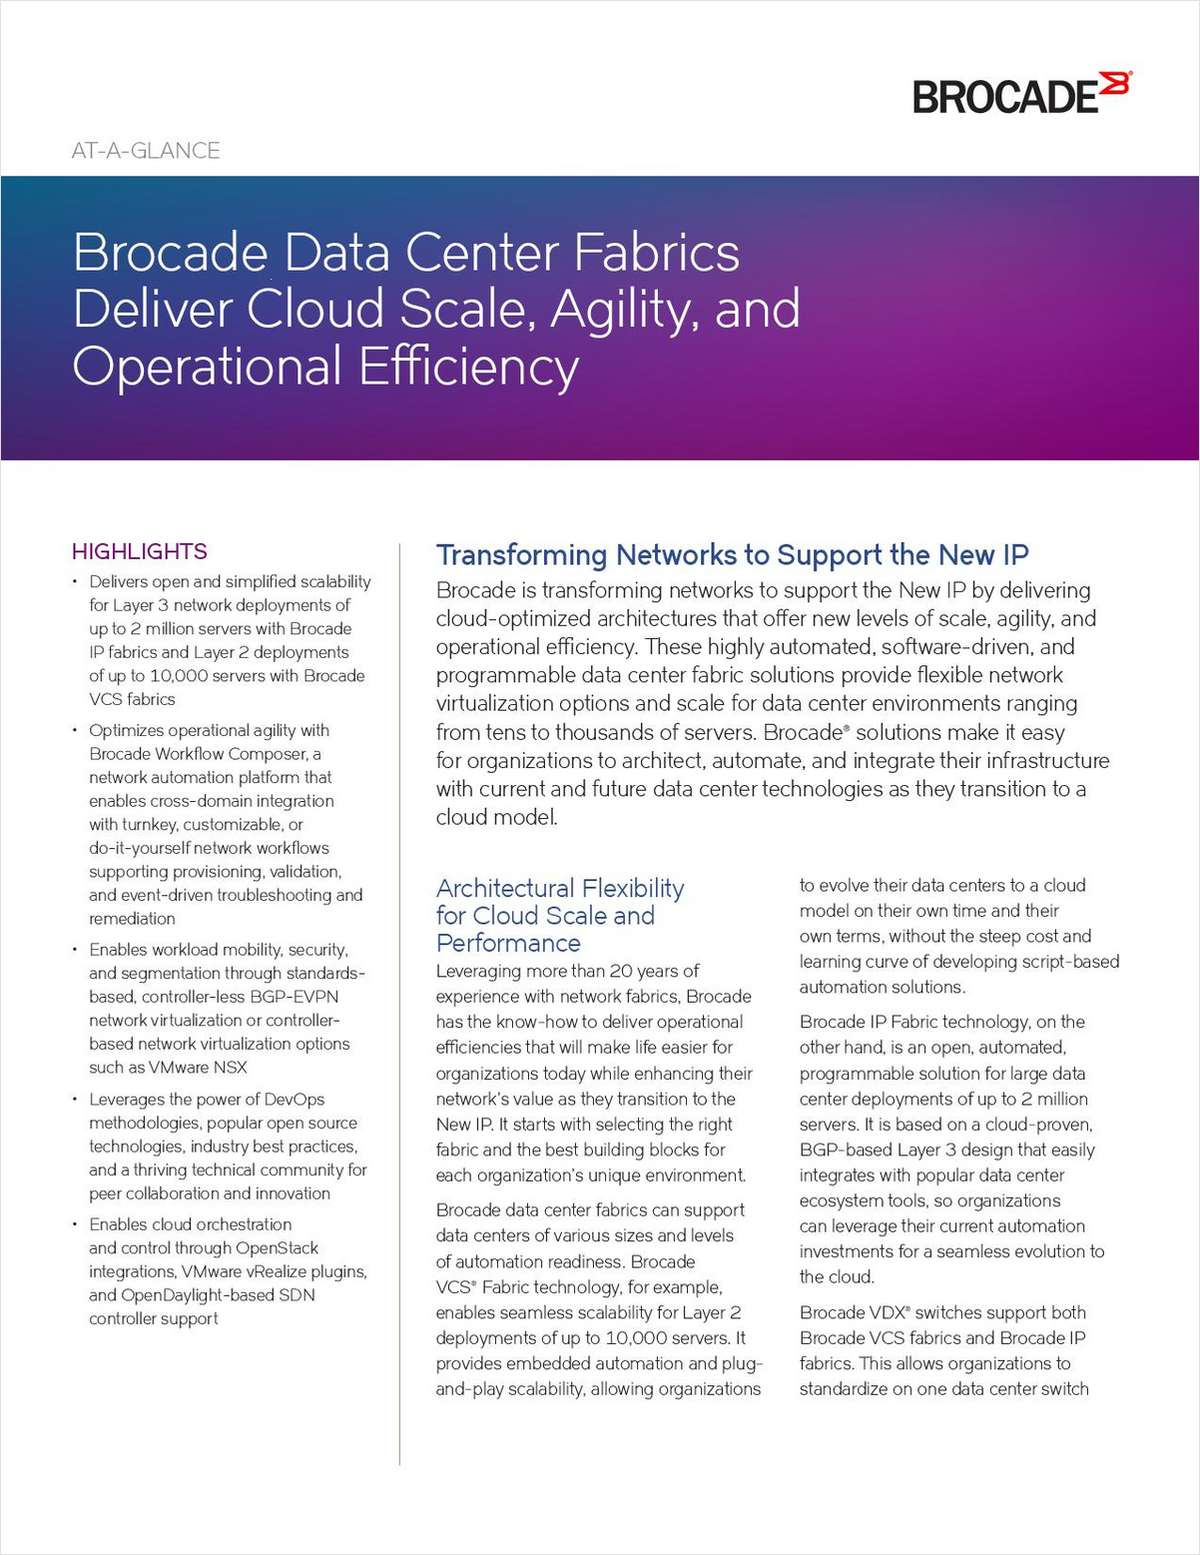 Brocade Data Center Fabrics Deliver Cloud Scale Agility And